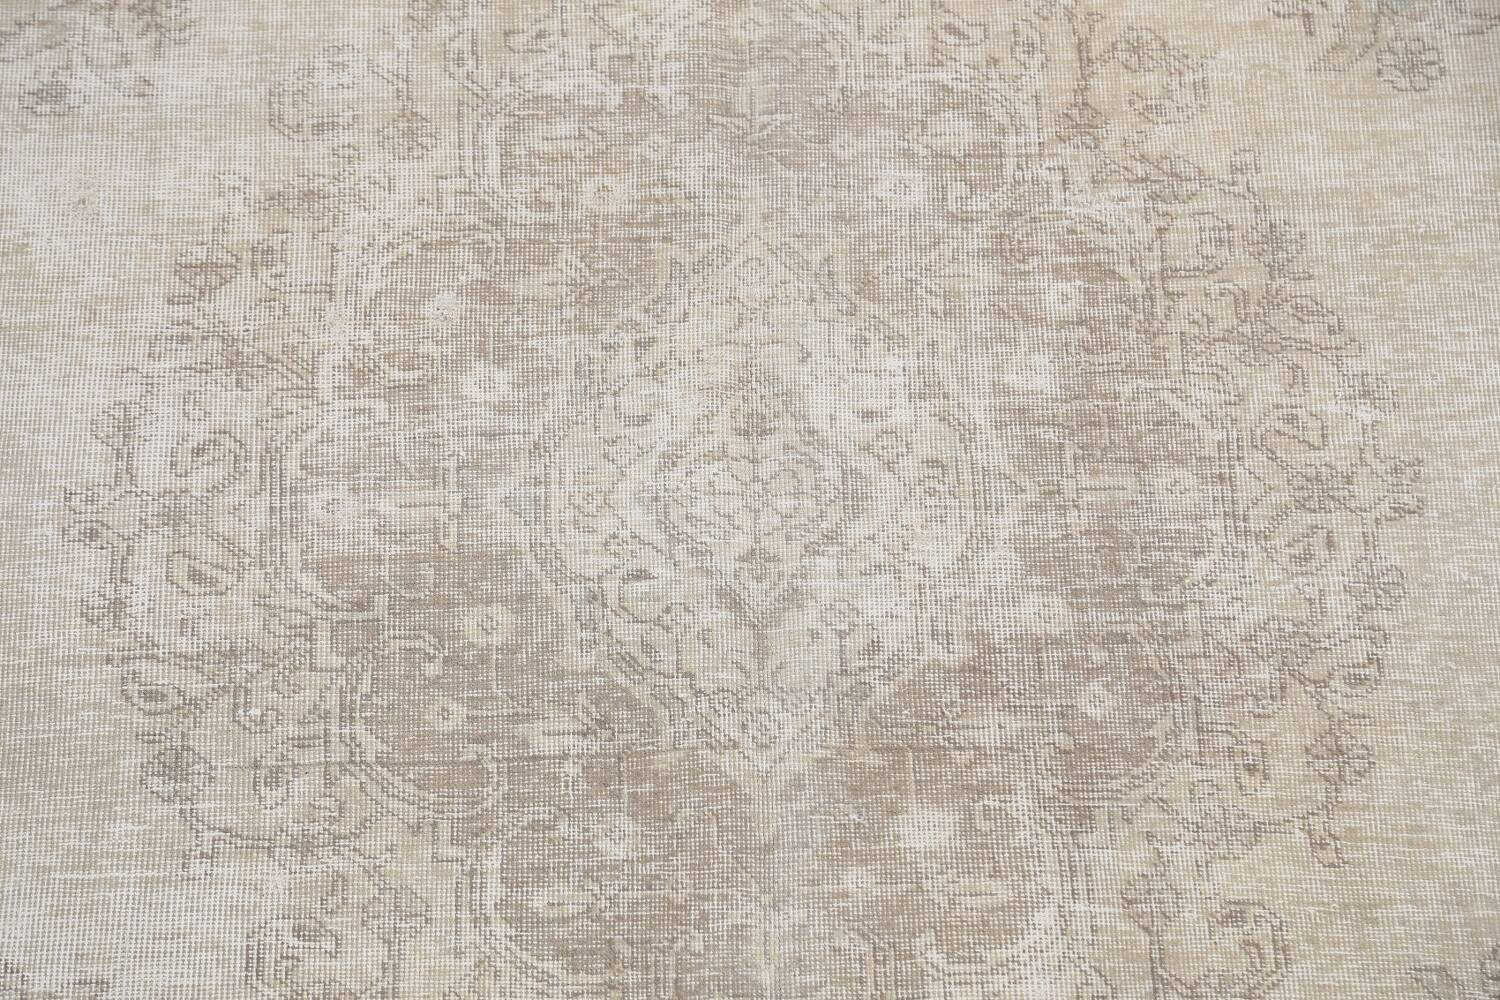 Muted Distressed Floral Tabriz Persian Area Rug 6x9 image 4